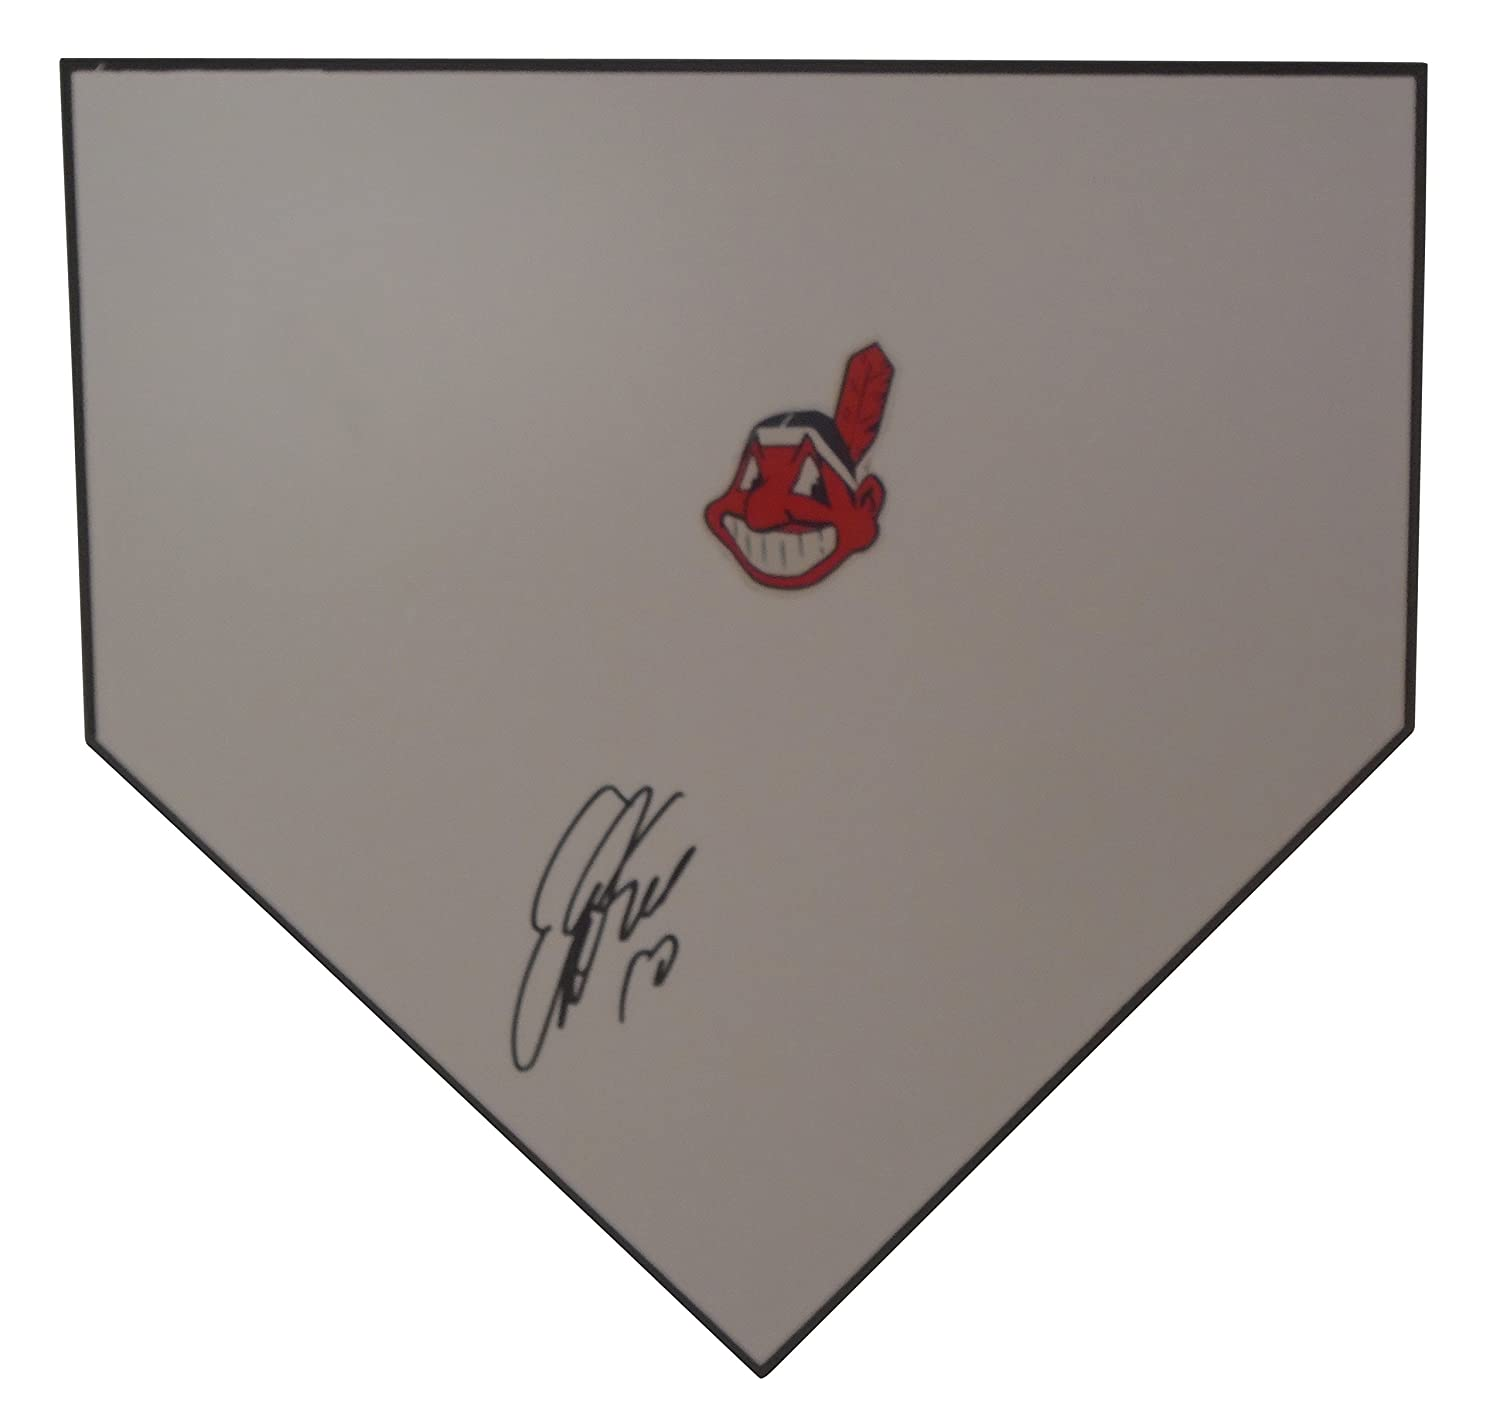 32900c58f Cleveland Indians Edwin Encarnacion Autographed Hand Signed Baseball Home  Plate Base with Proof Photo of Signing and COA at Amazon s Sports  Collectibles ...